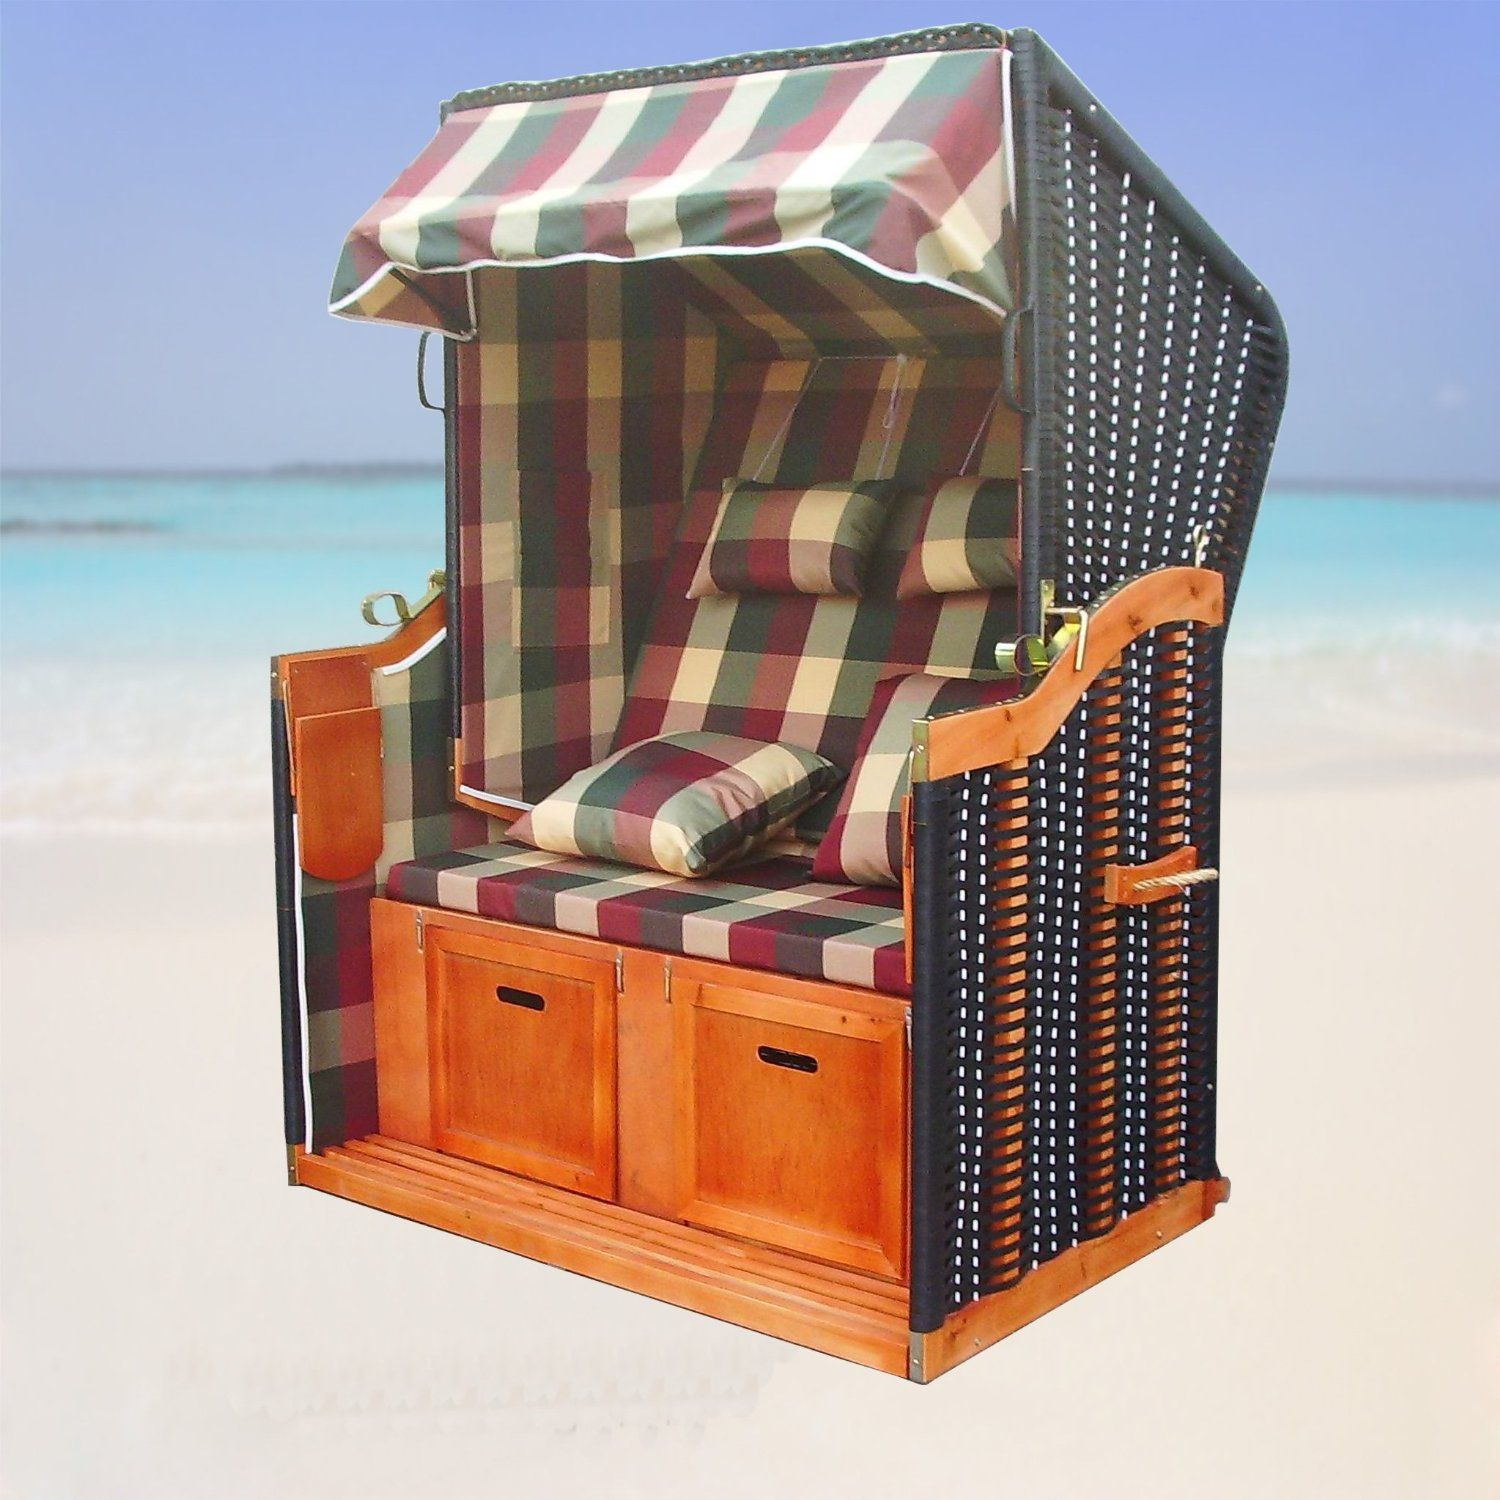 xinro xy 54 balkon strandkorb rot gr n karo inkl luxus strandkorb schutzh lle sylt. Black Bedroom Furniture Sets. Home Design Ideas